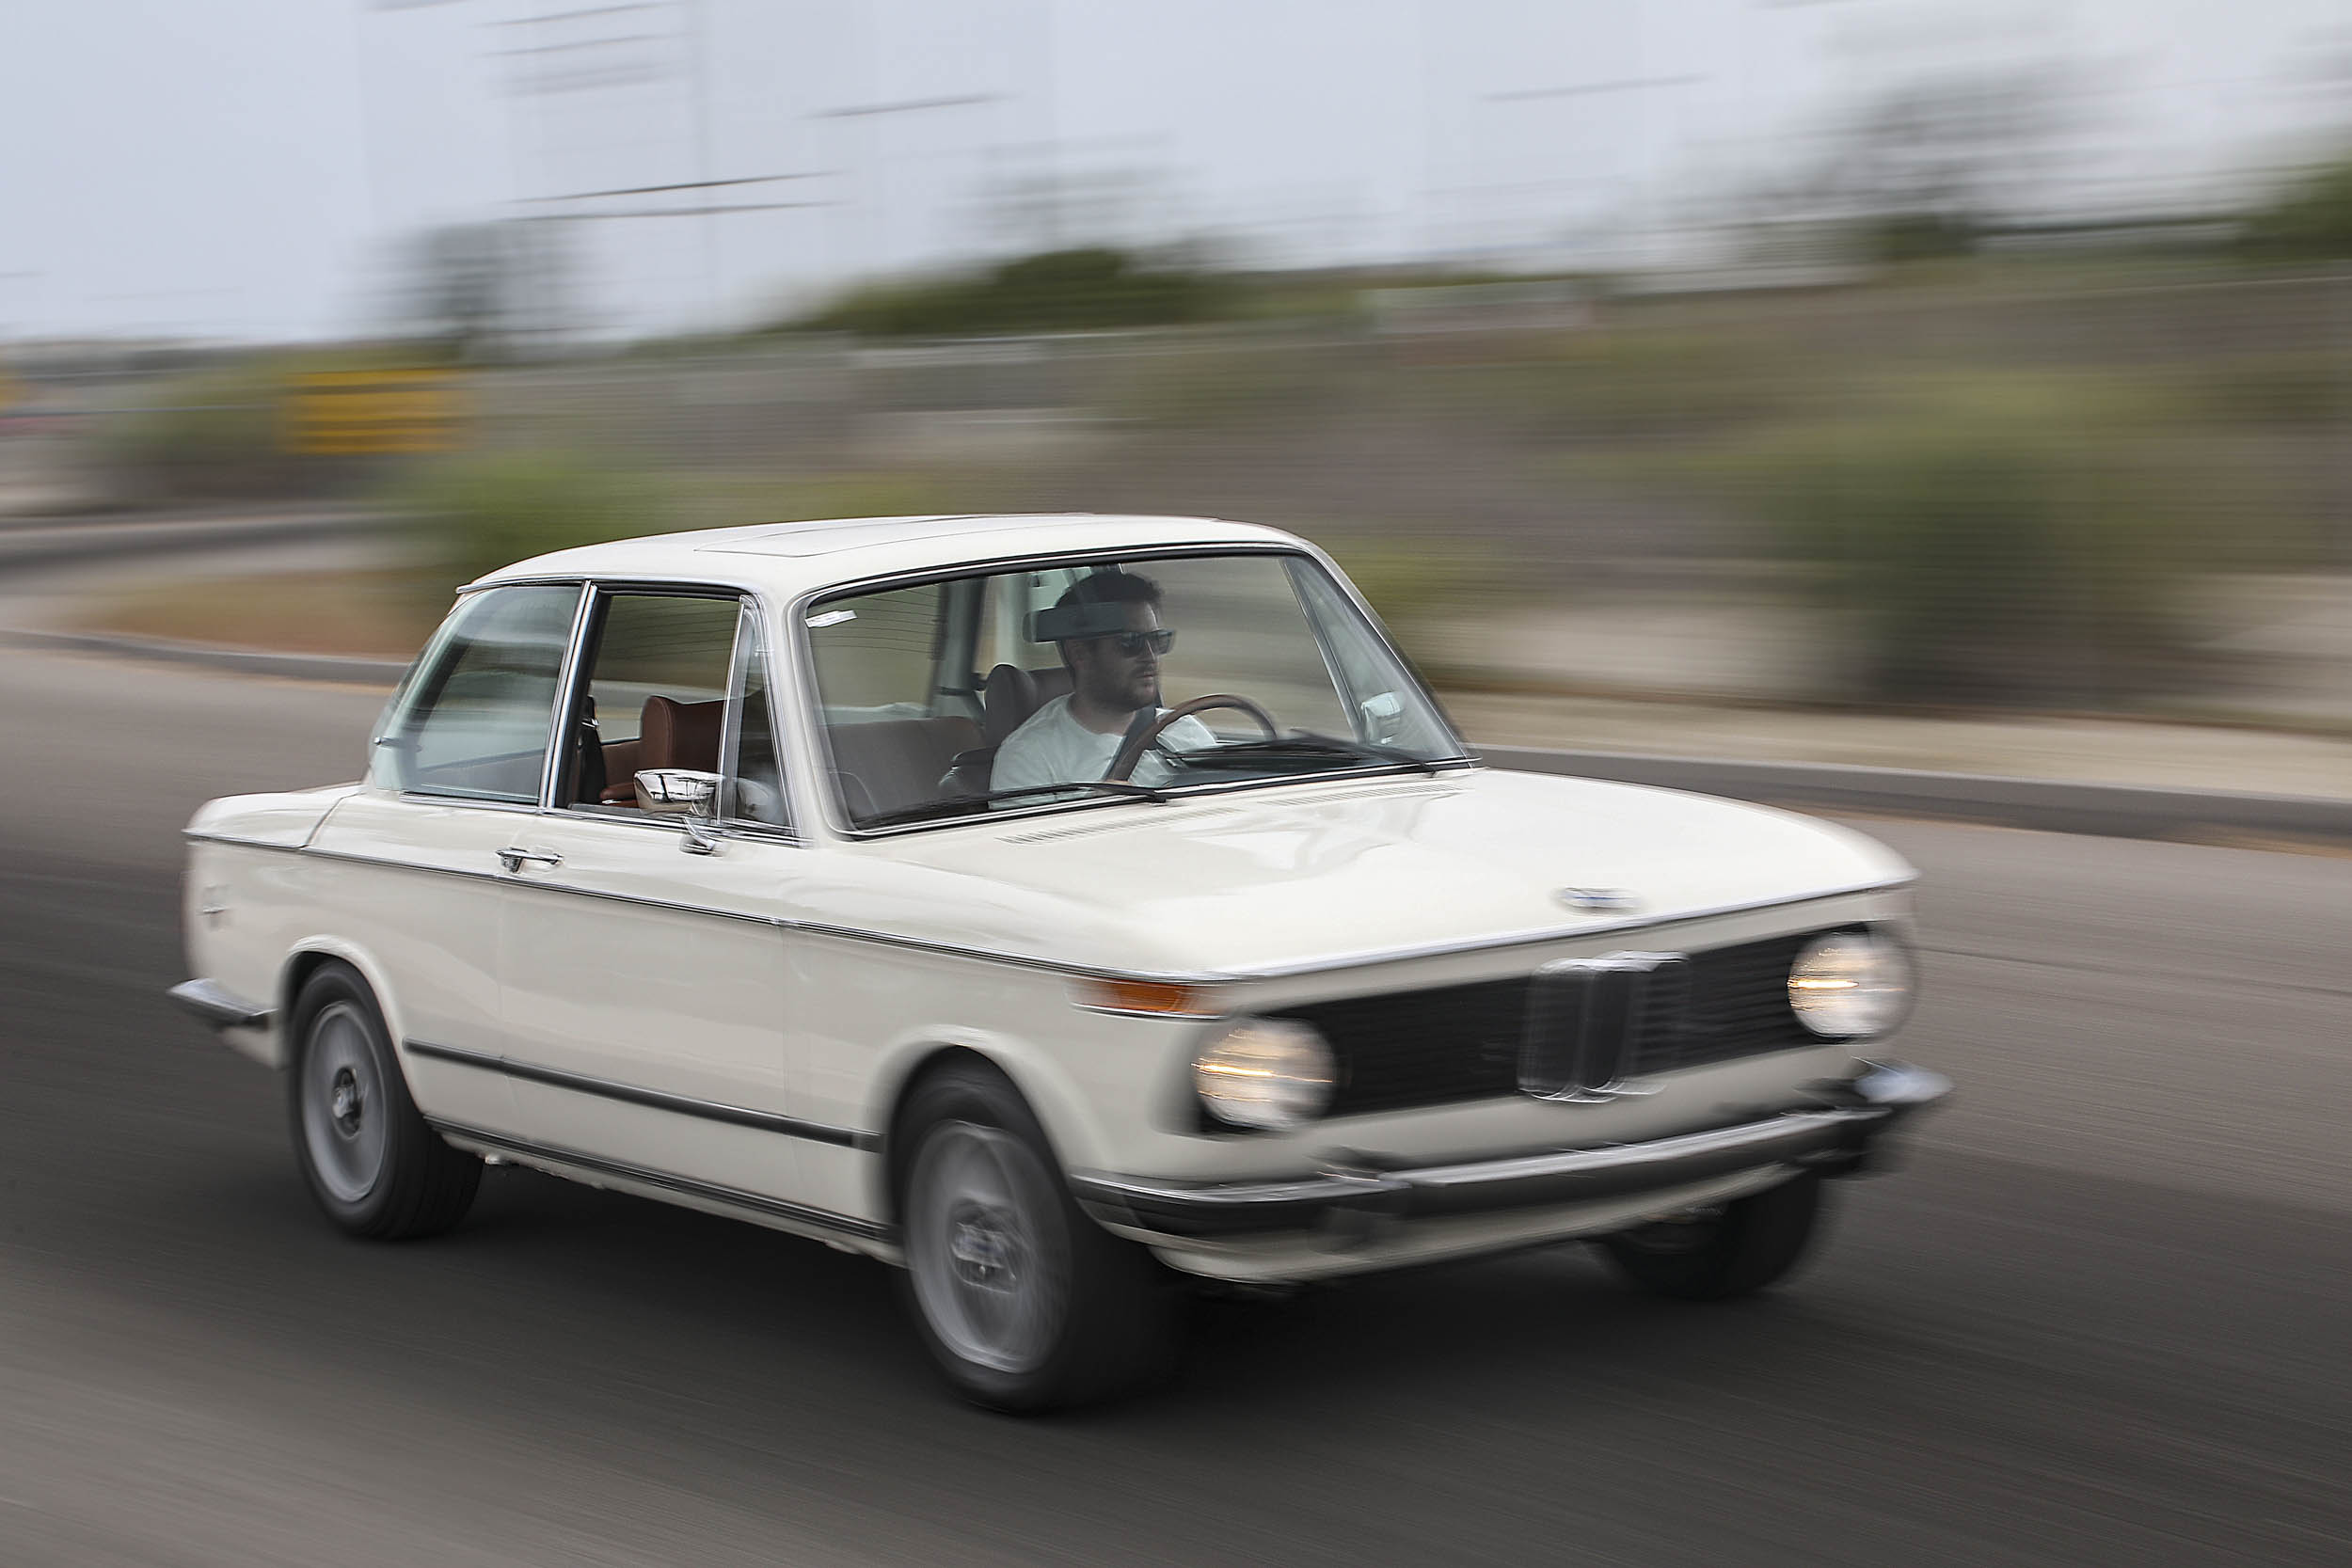 1975 BMW 2002 driving front 3/4